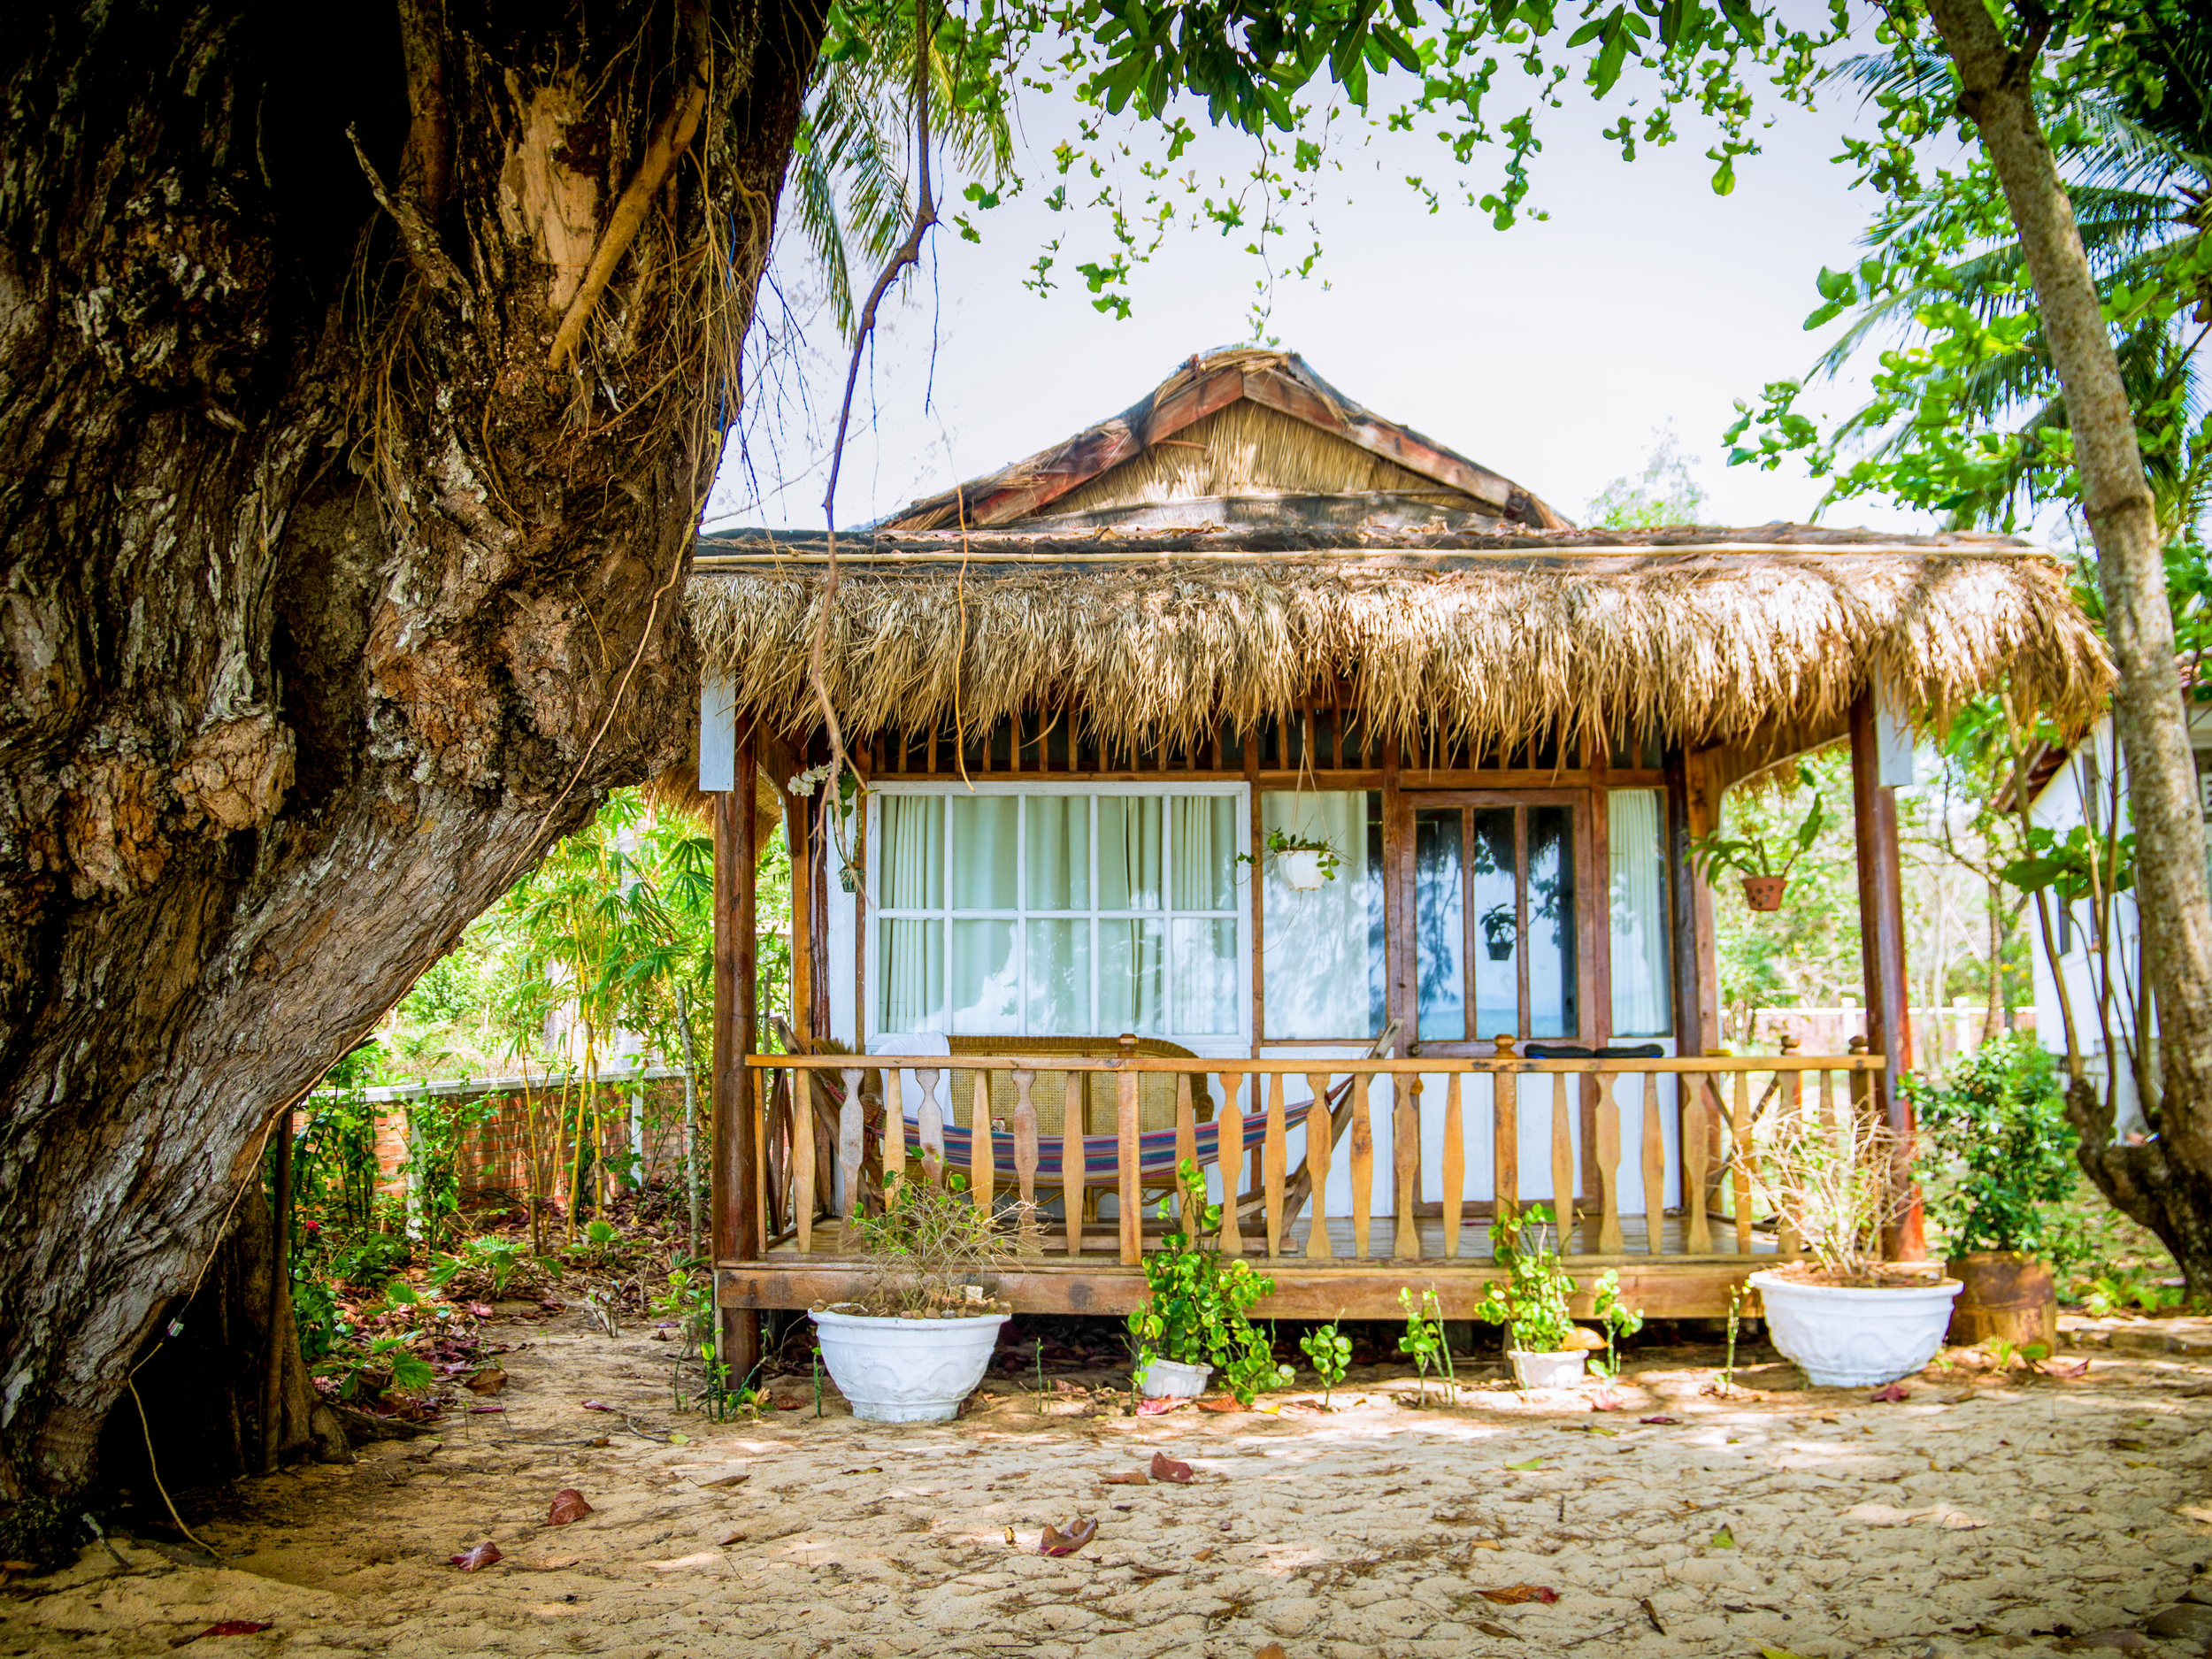 phuo-quoc-bamboo-cottage-29.jpg